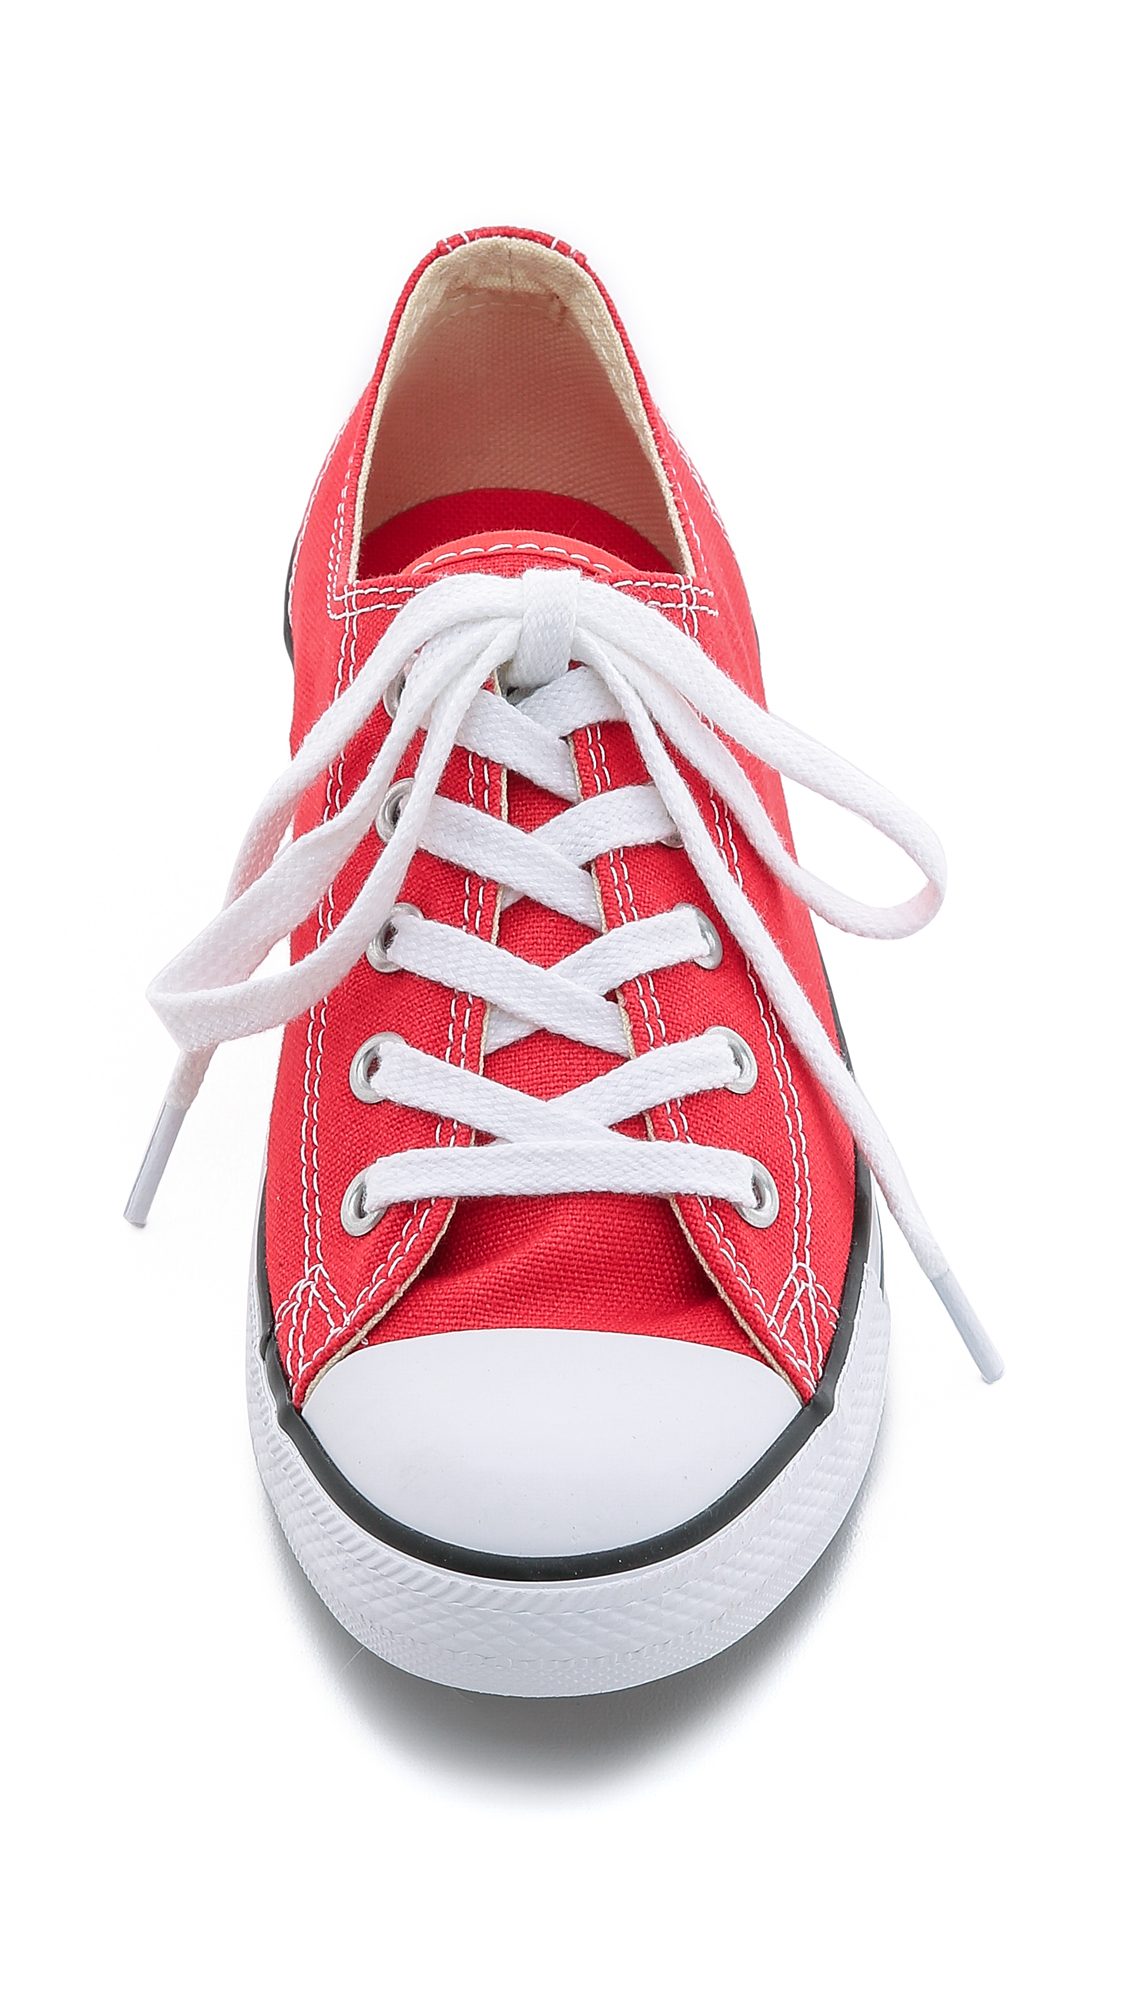 Converse Chuck Taylor All Star Dainty Sneakers - Carnival in Red